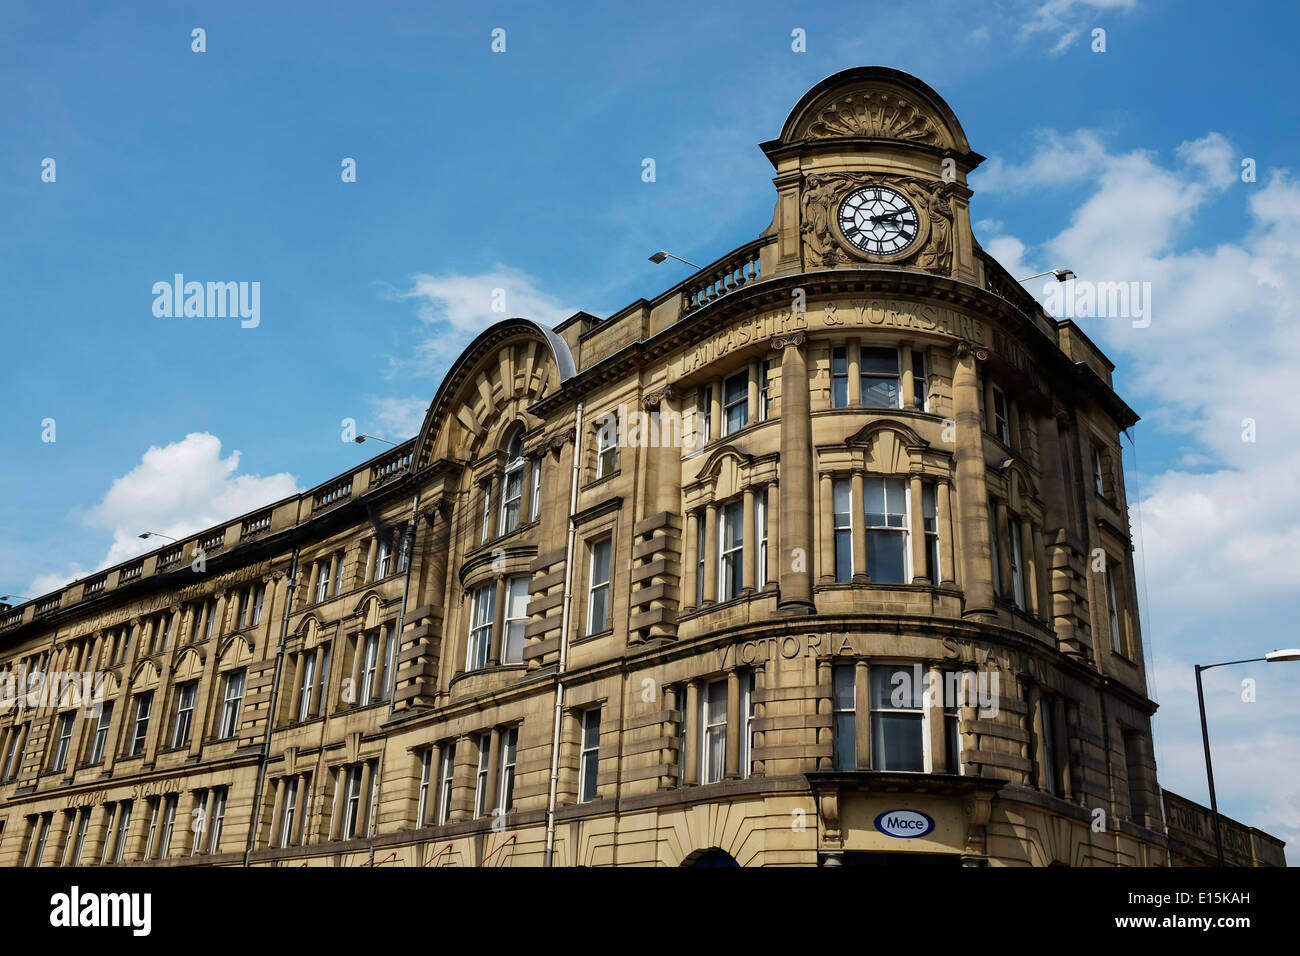 Victoria Station in Manchester city centre UK - Stock Image